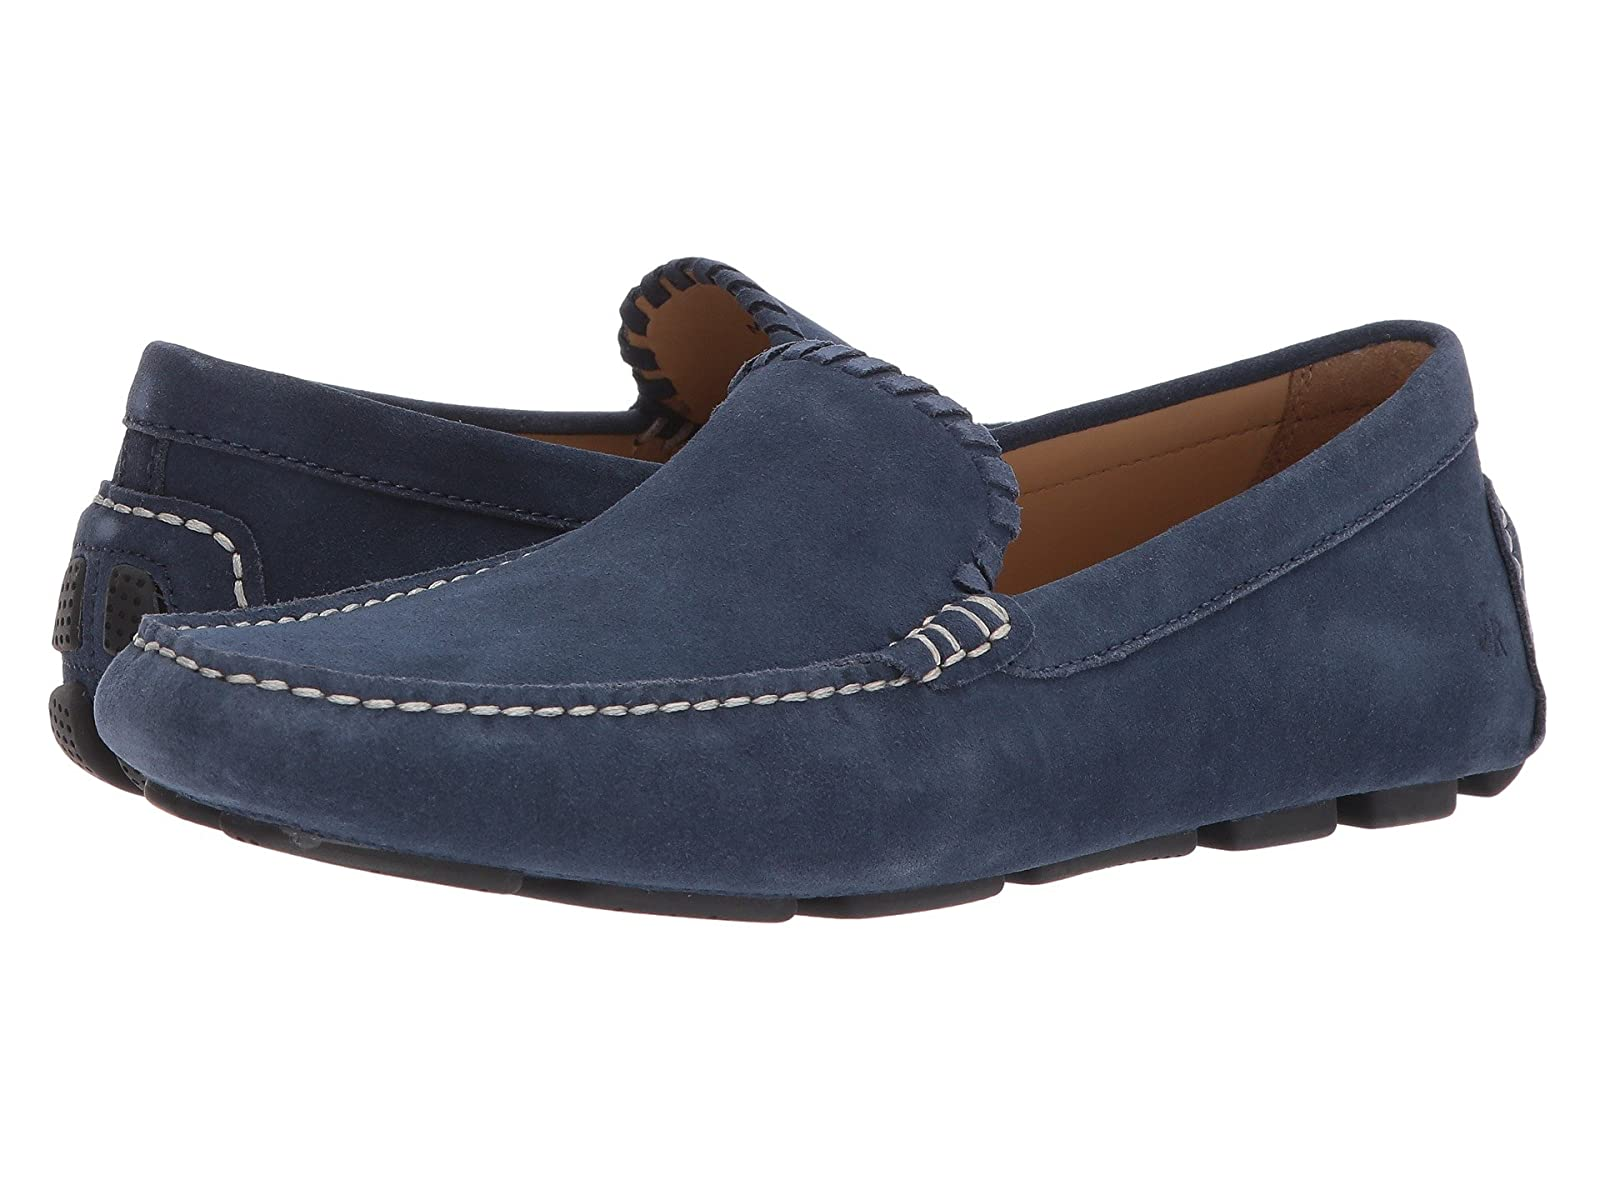 Jack Rogers Emmett Waterproof LoaferAtmospheric grades have affordable shoes